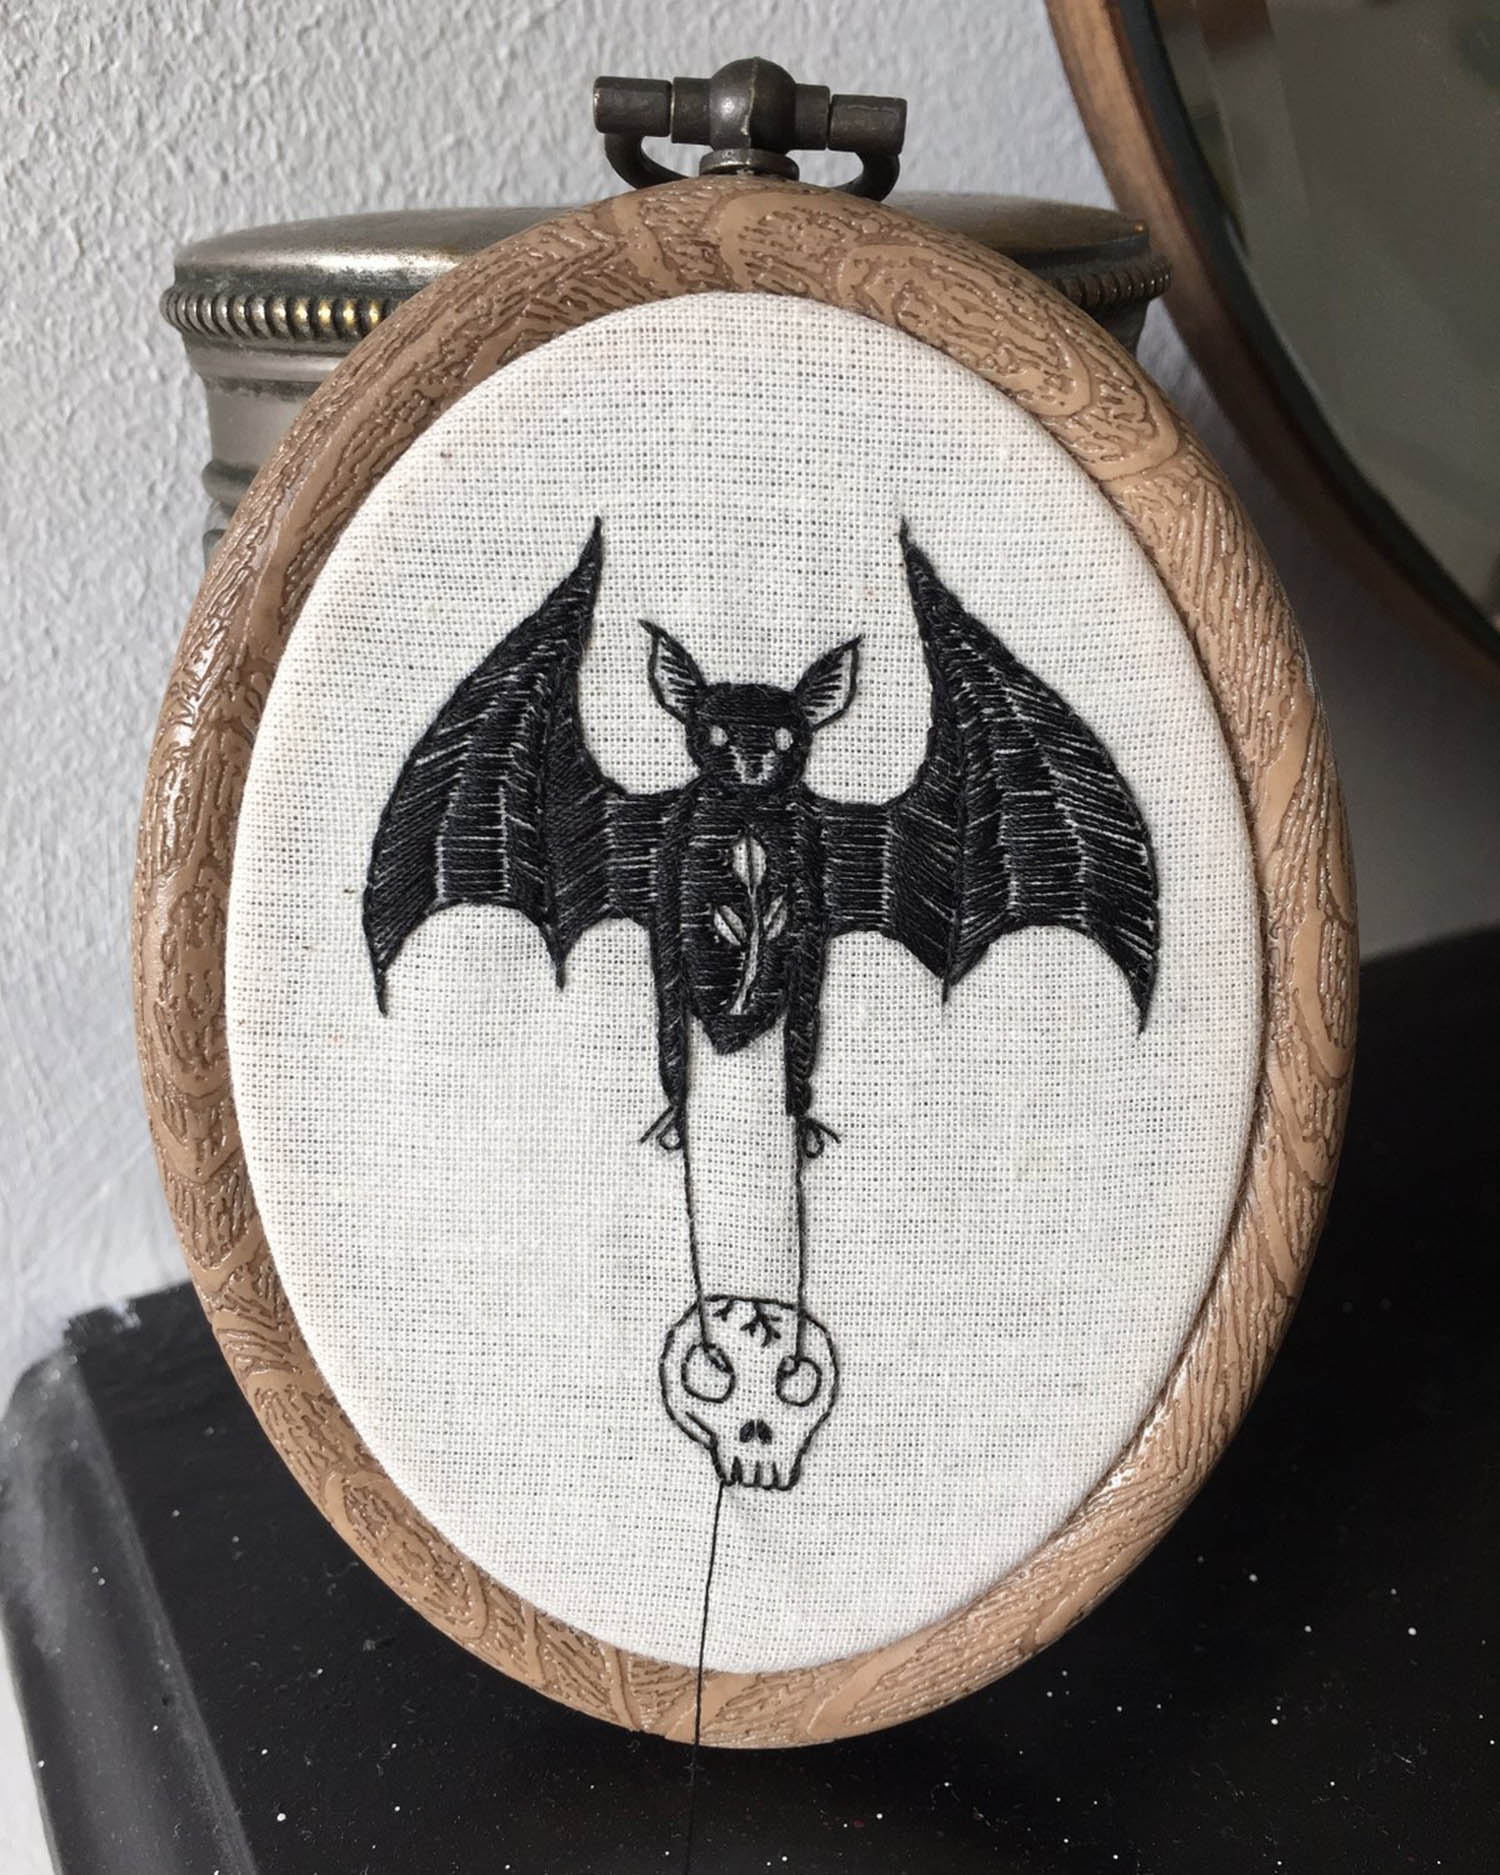 Embroidery of a bat holding a skull